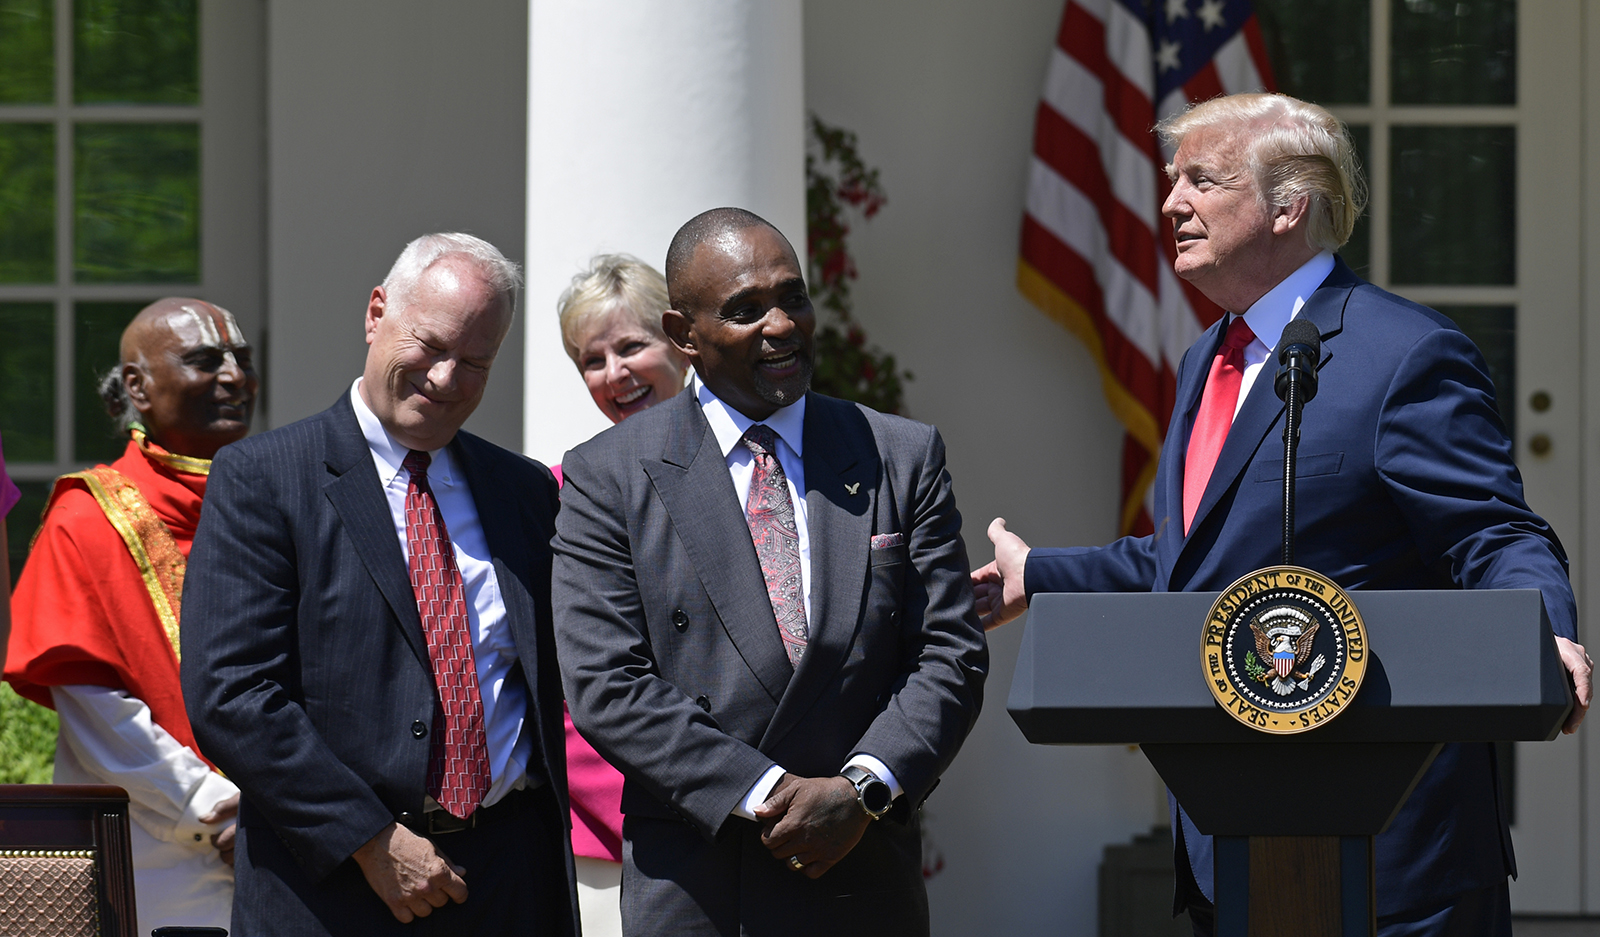 In this May 3, 2018 file photo, President Donald Trump talks about Jon Ponder, center, from Las Vegas during a National Day of Prayer event in the Rose Garden of the White House in Washington.